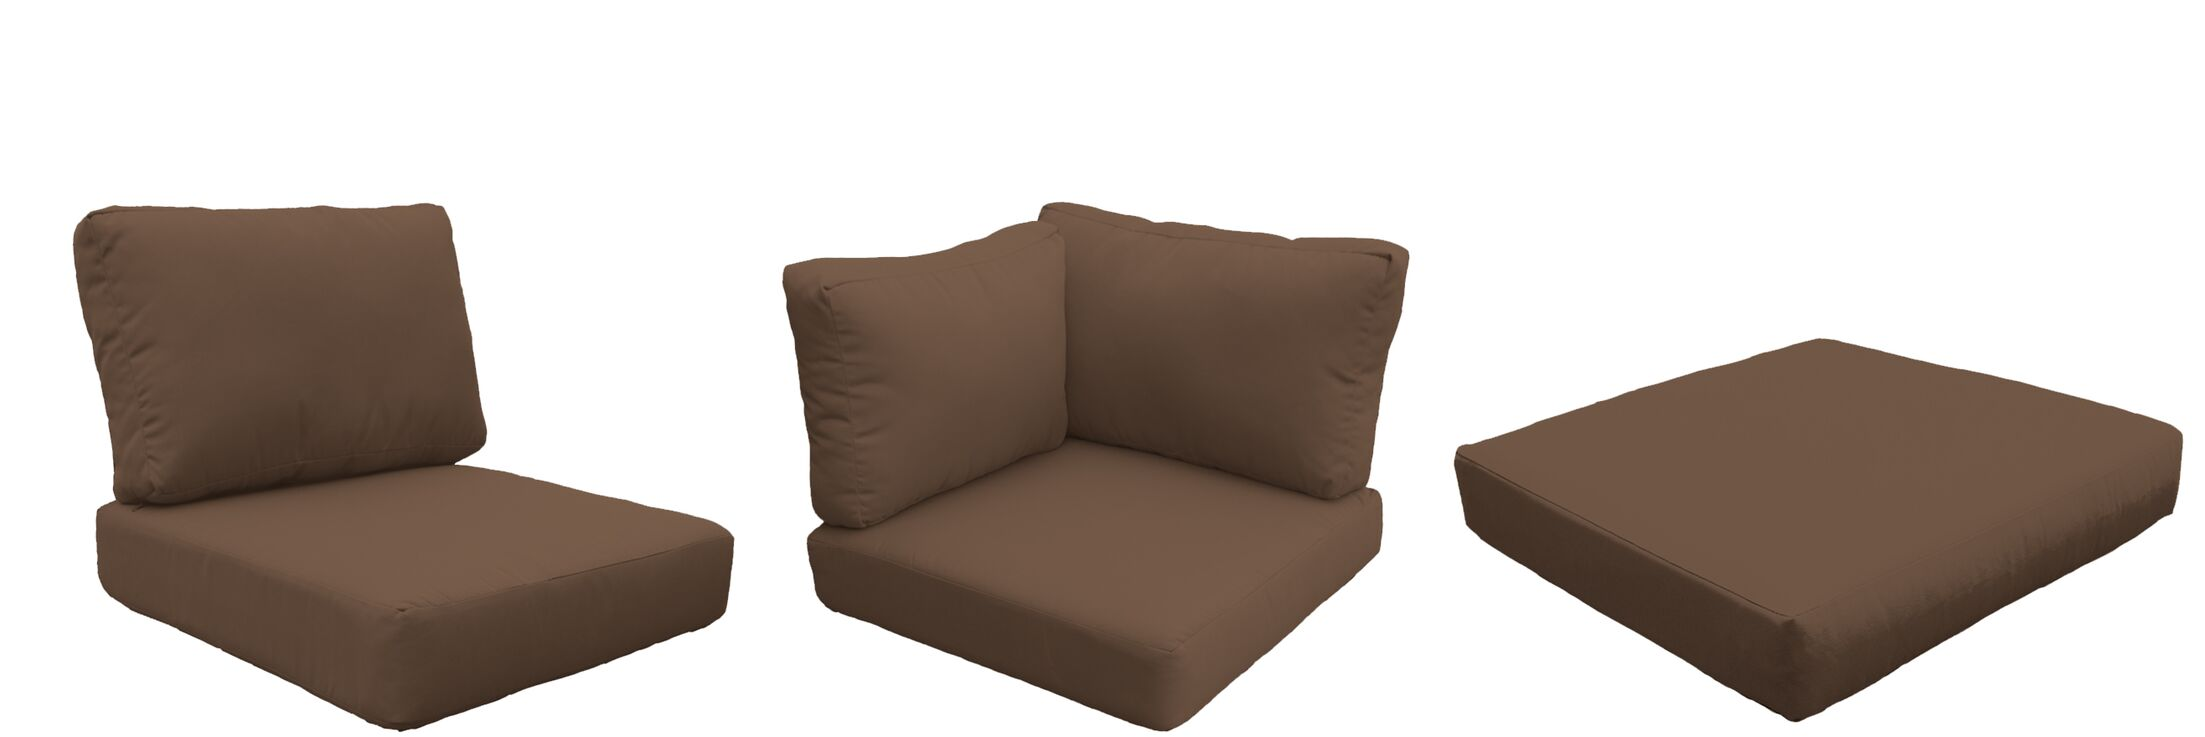 East Village Outdoor 22 Piece Lounge Chair Cushion Set Fabric: Cocoa